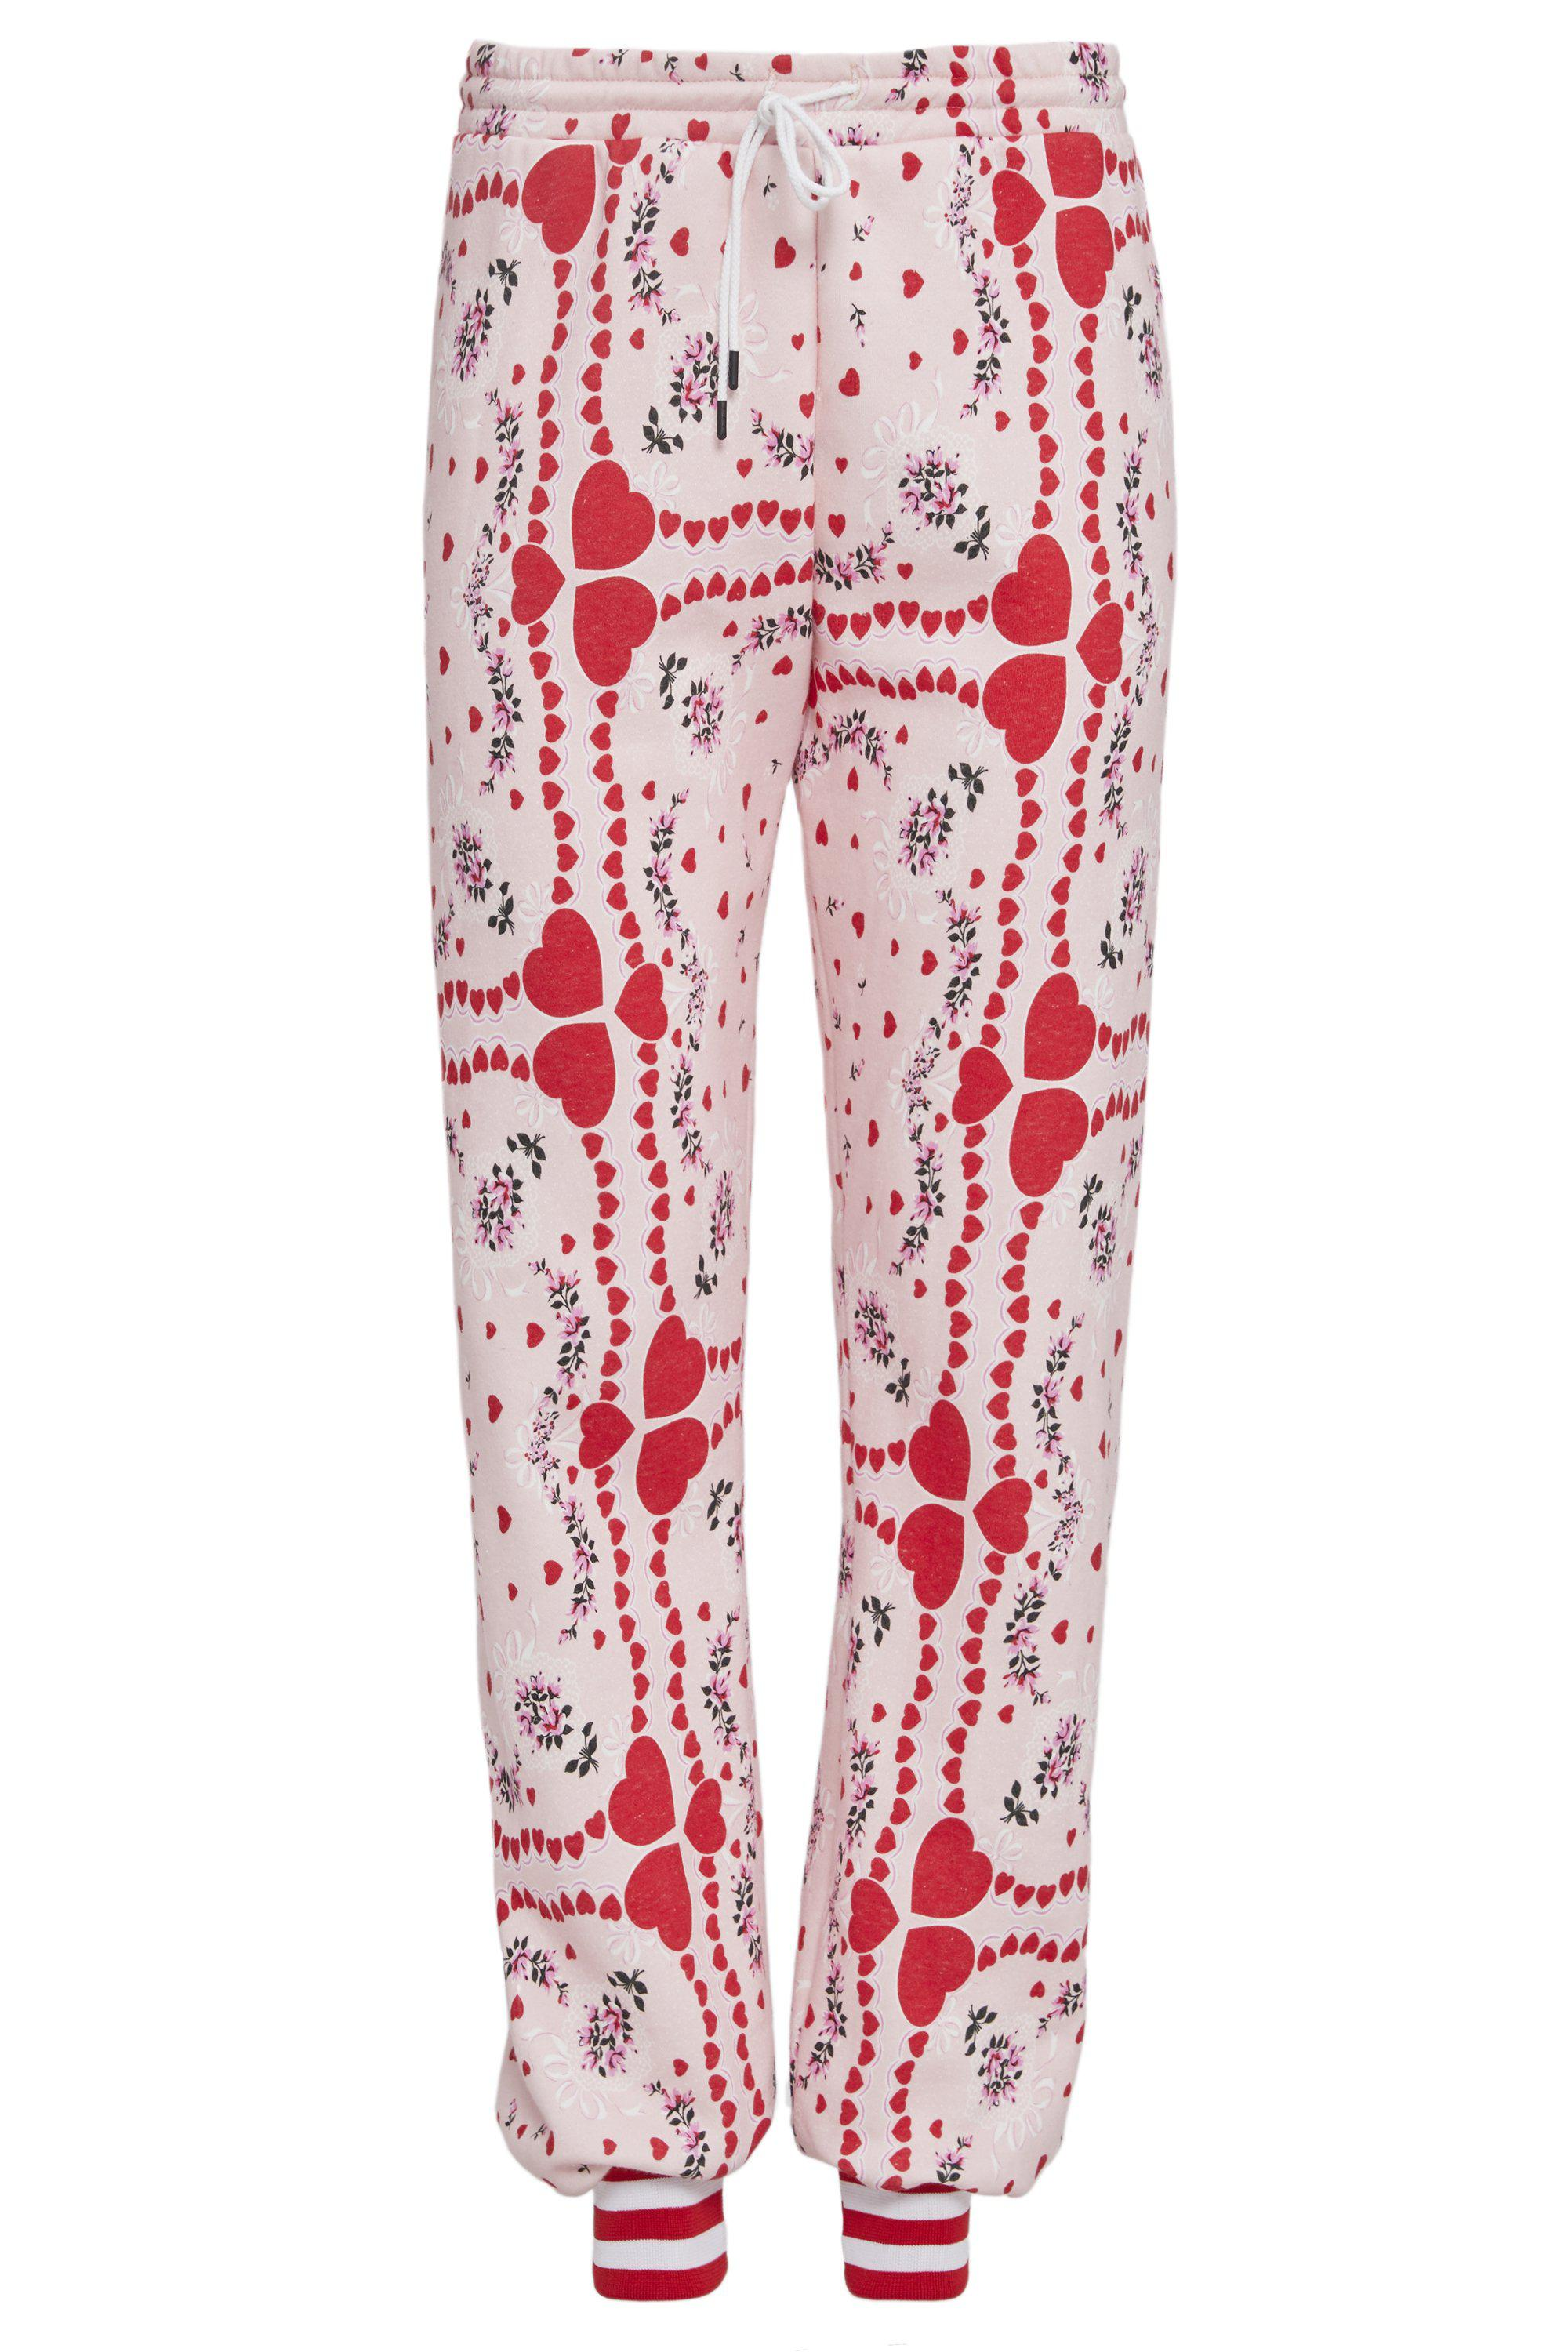 HEART AND FLORAL PRINT SWEATPANT 5